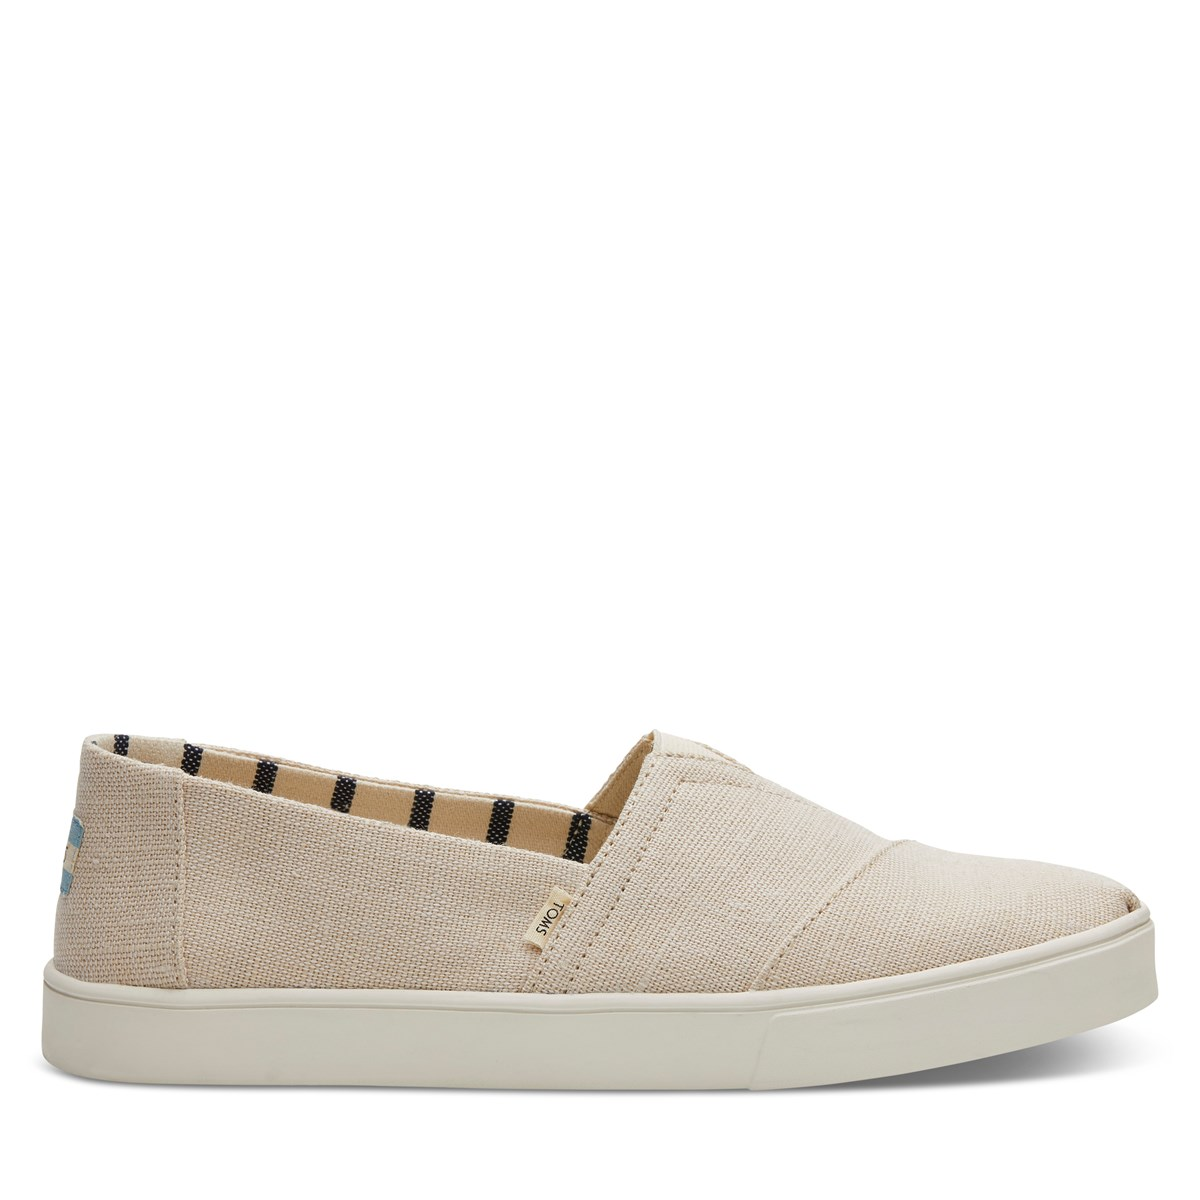 Men's Alpargata Cupsole Slip-on in beige